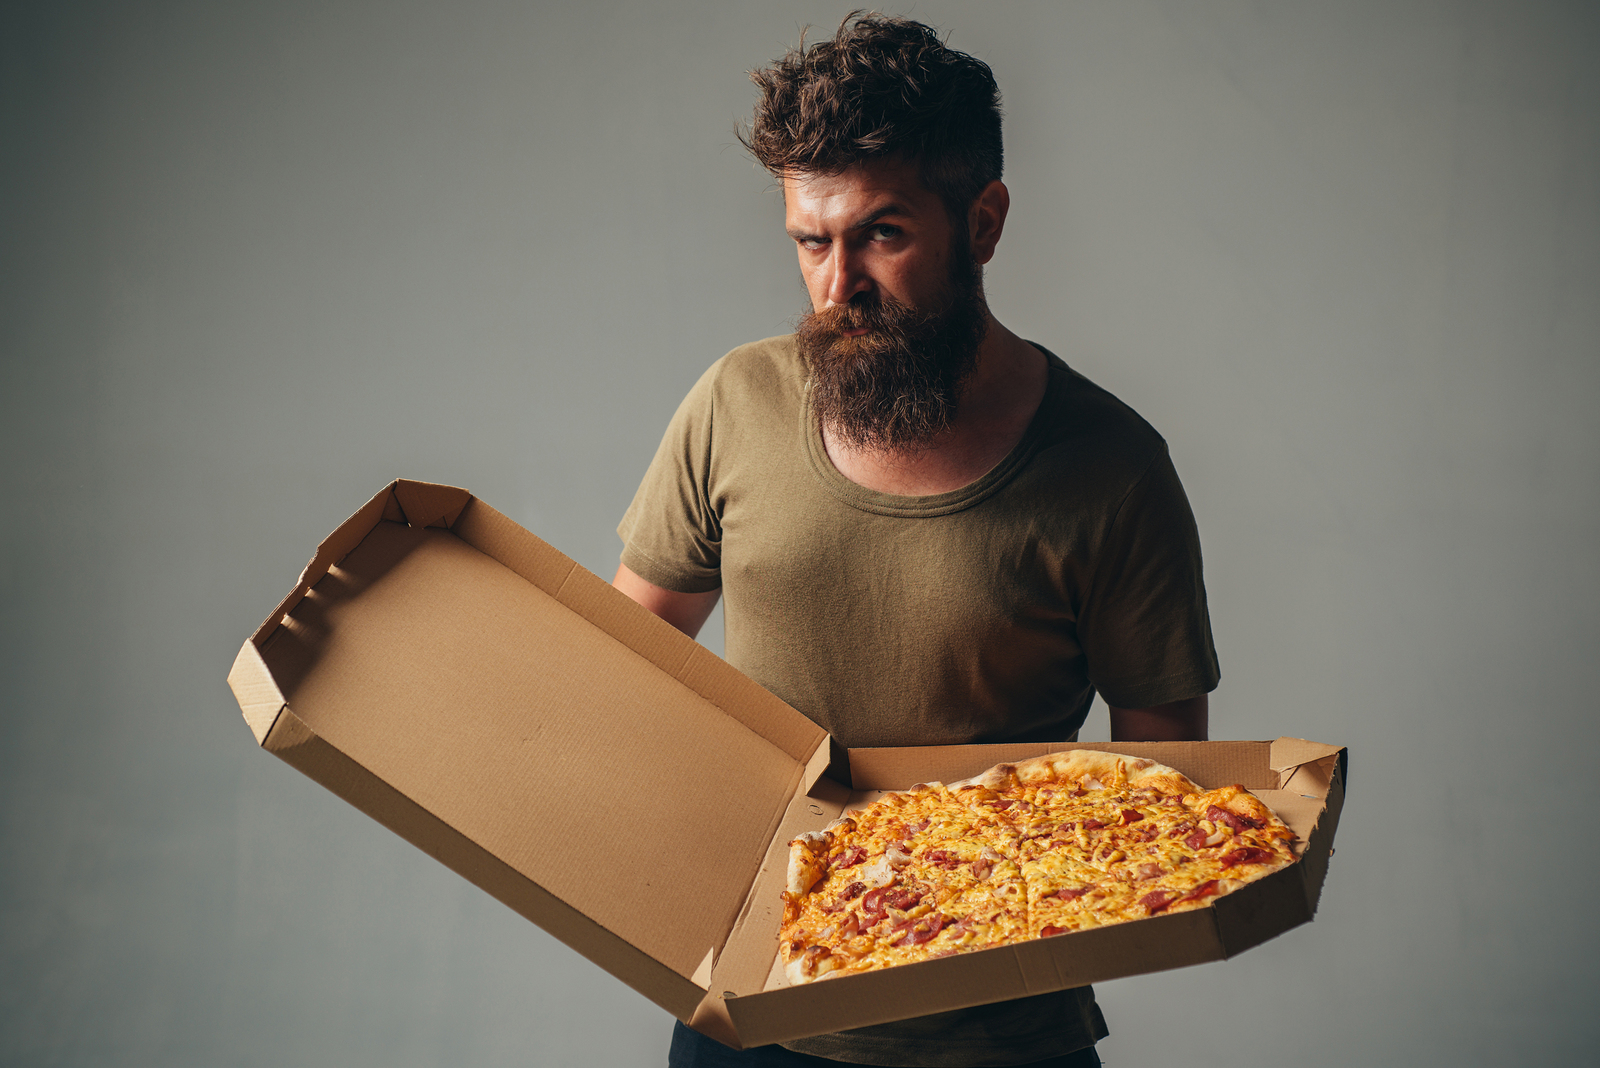 bigstock-Sexy-Man-With-Pizza-Box-Gay-W-2